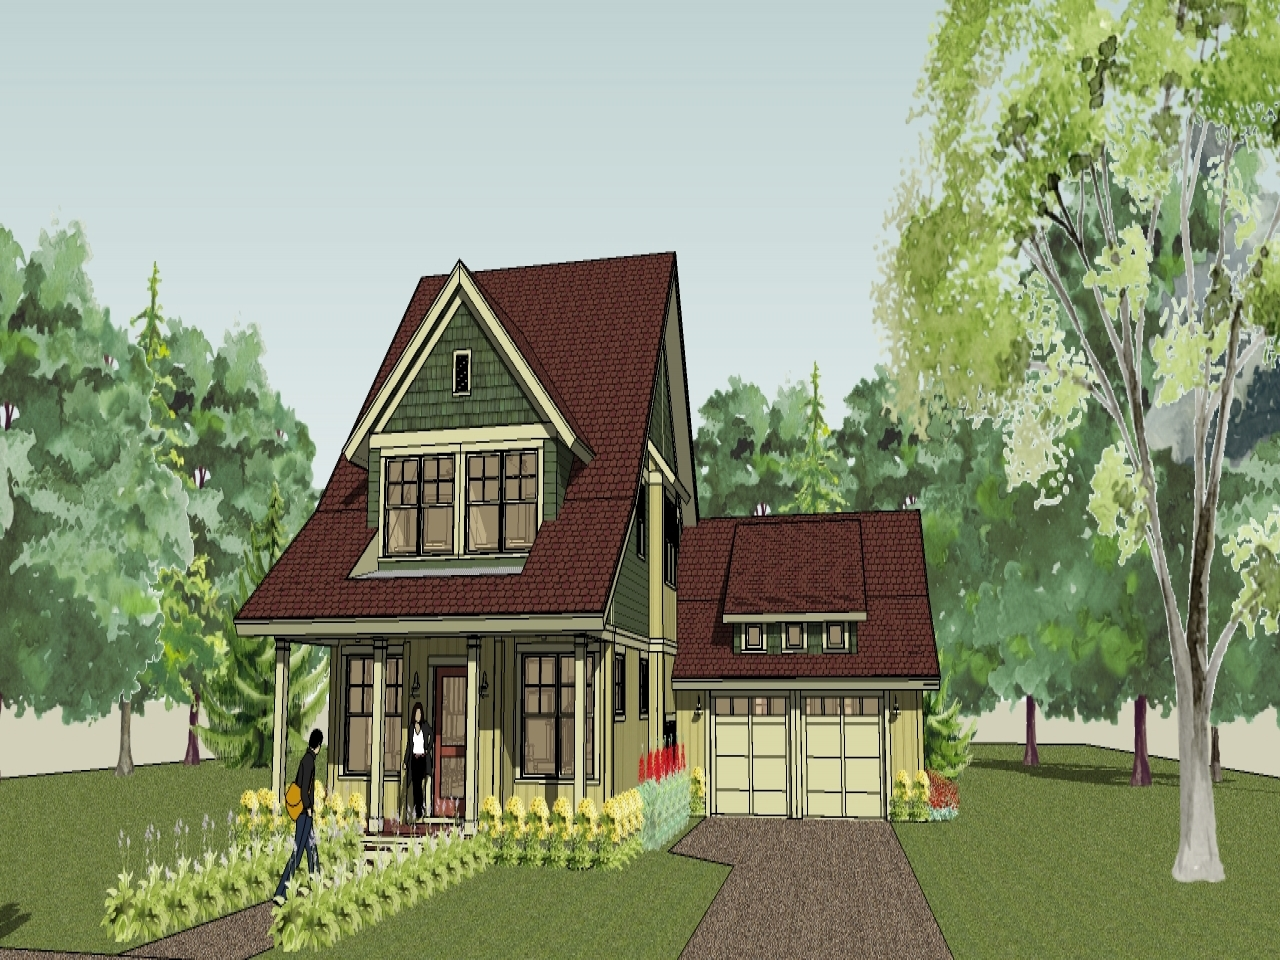 Country cottage house plans bungalow cottage house plans for Country bungalow house plans